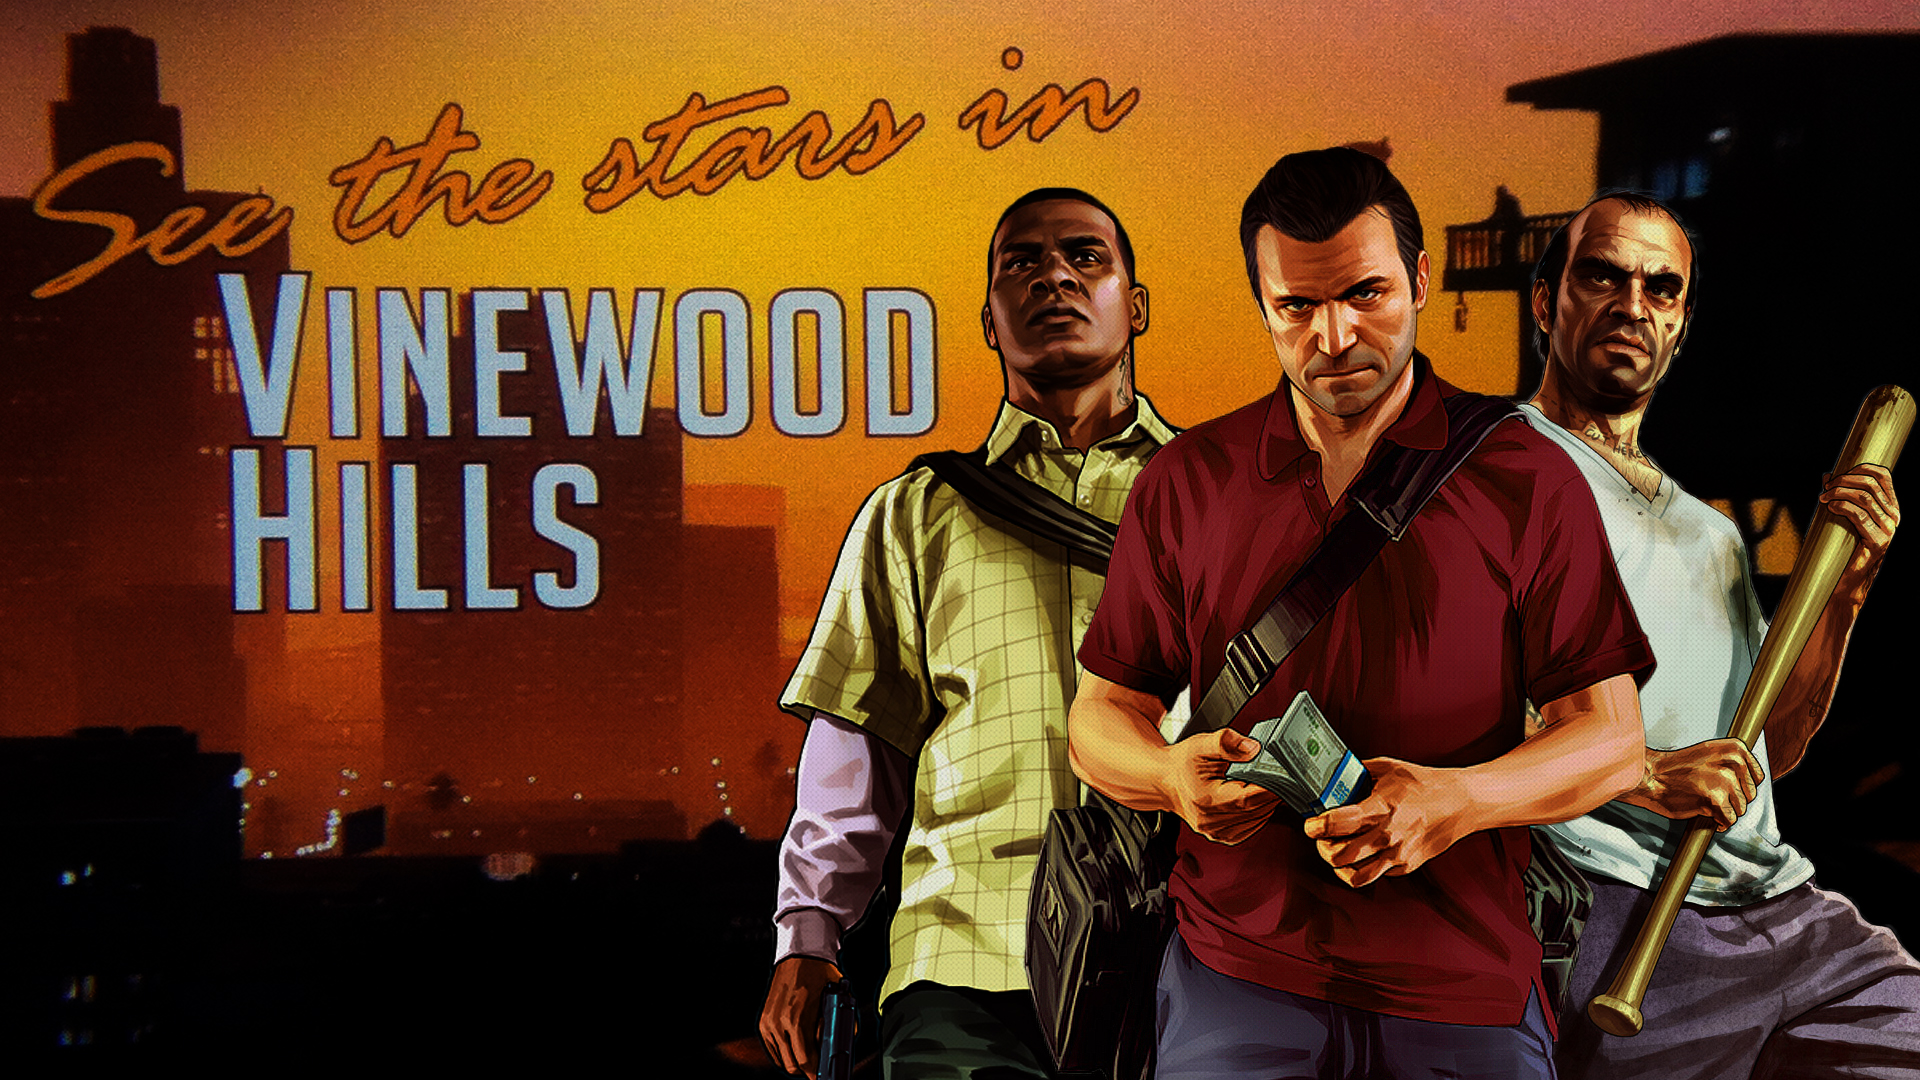 hills gta 5 1920x1080 wallpaper by blacklotusxx fan art wallpaper 1920x1080